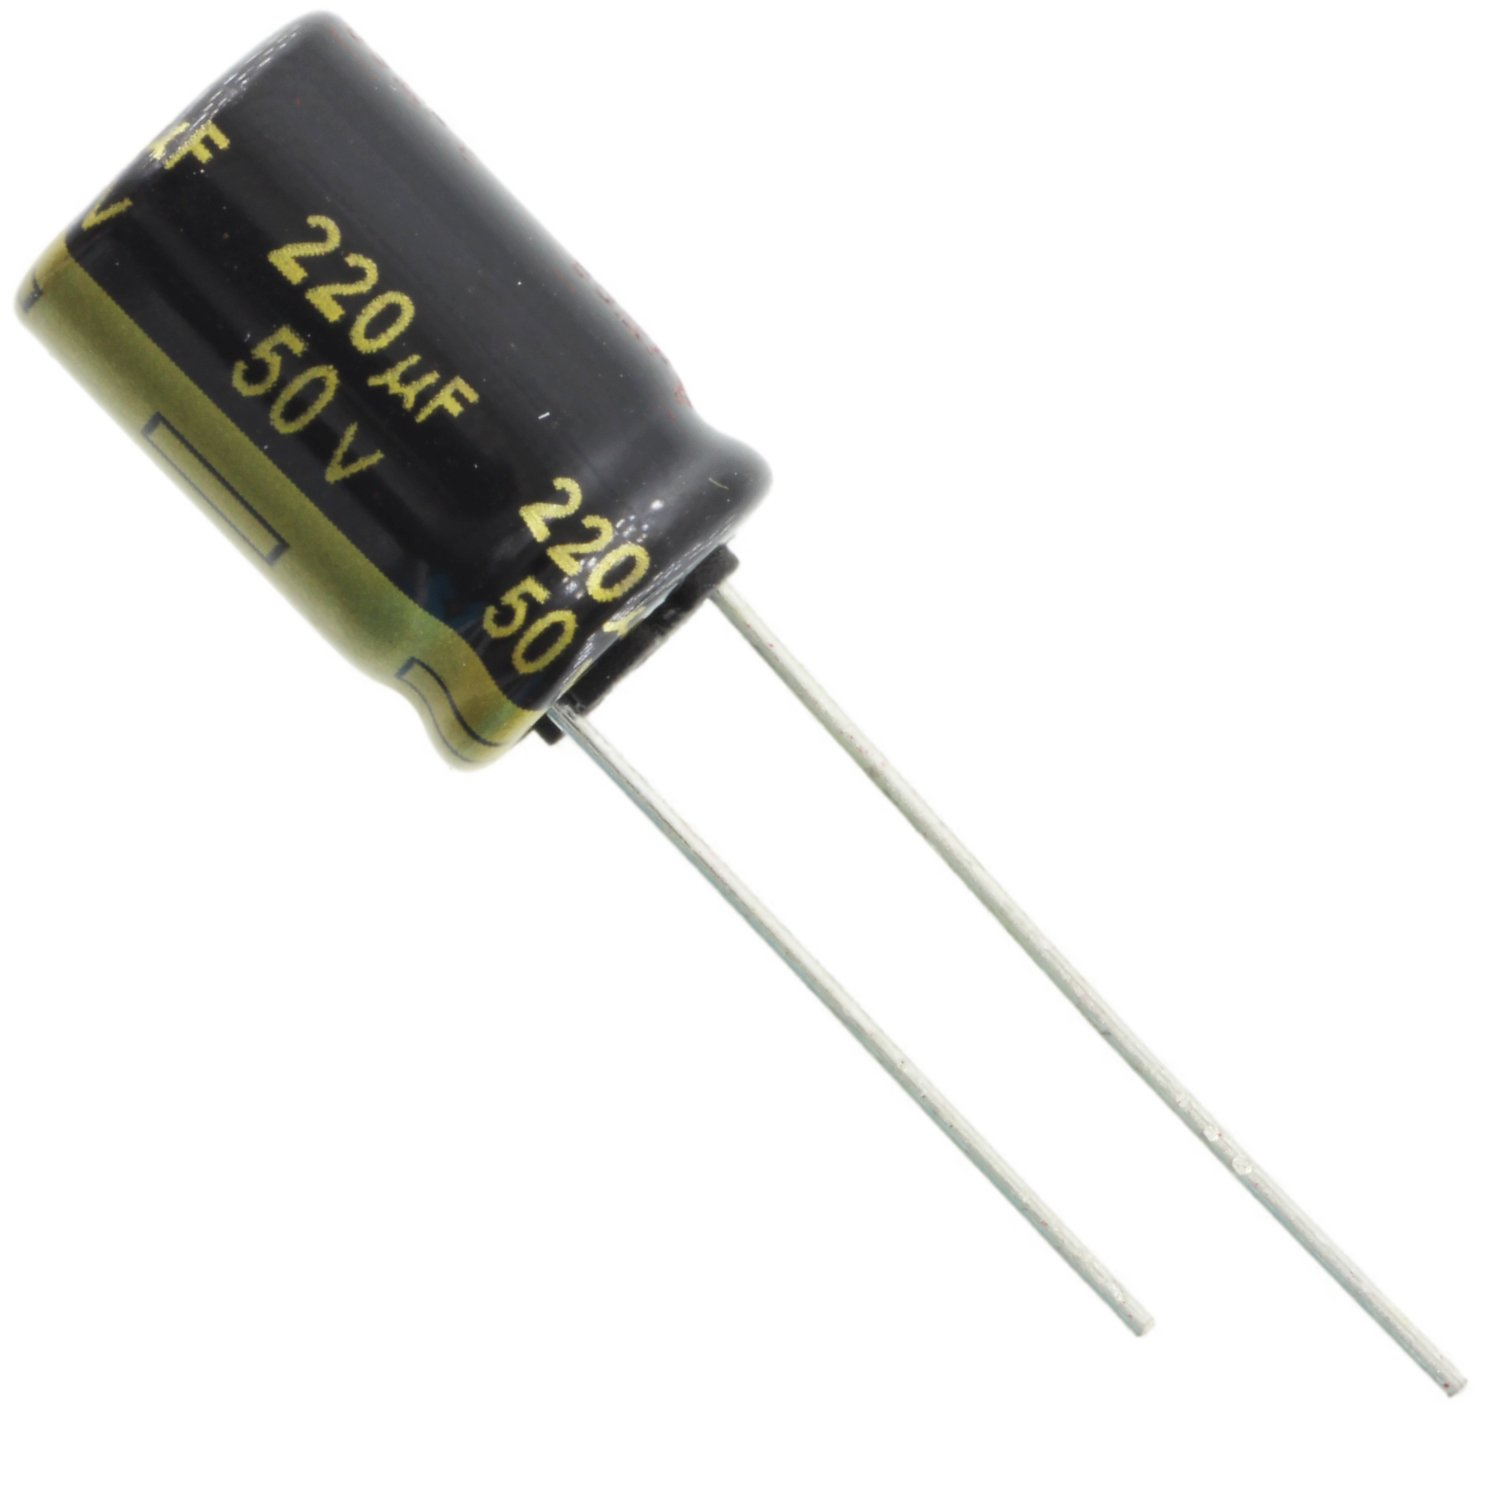 Panasonic FM Series 105C Electrolytic Capacitor, 220uF @ 50V, Radial Leads